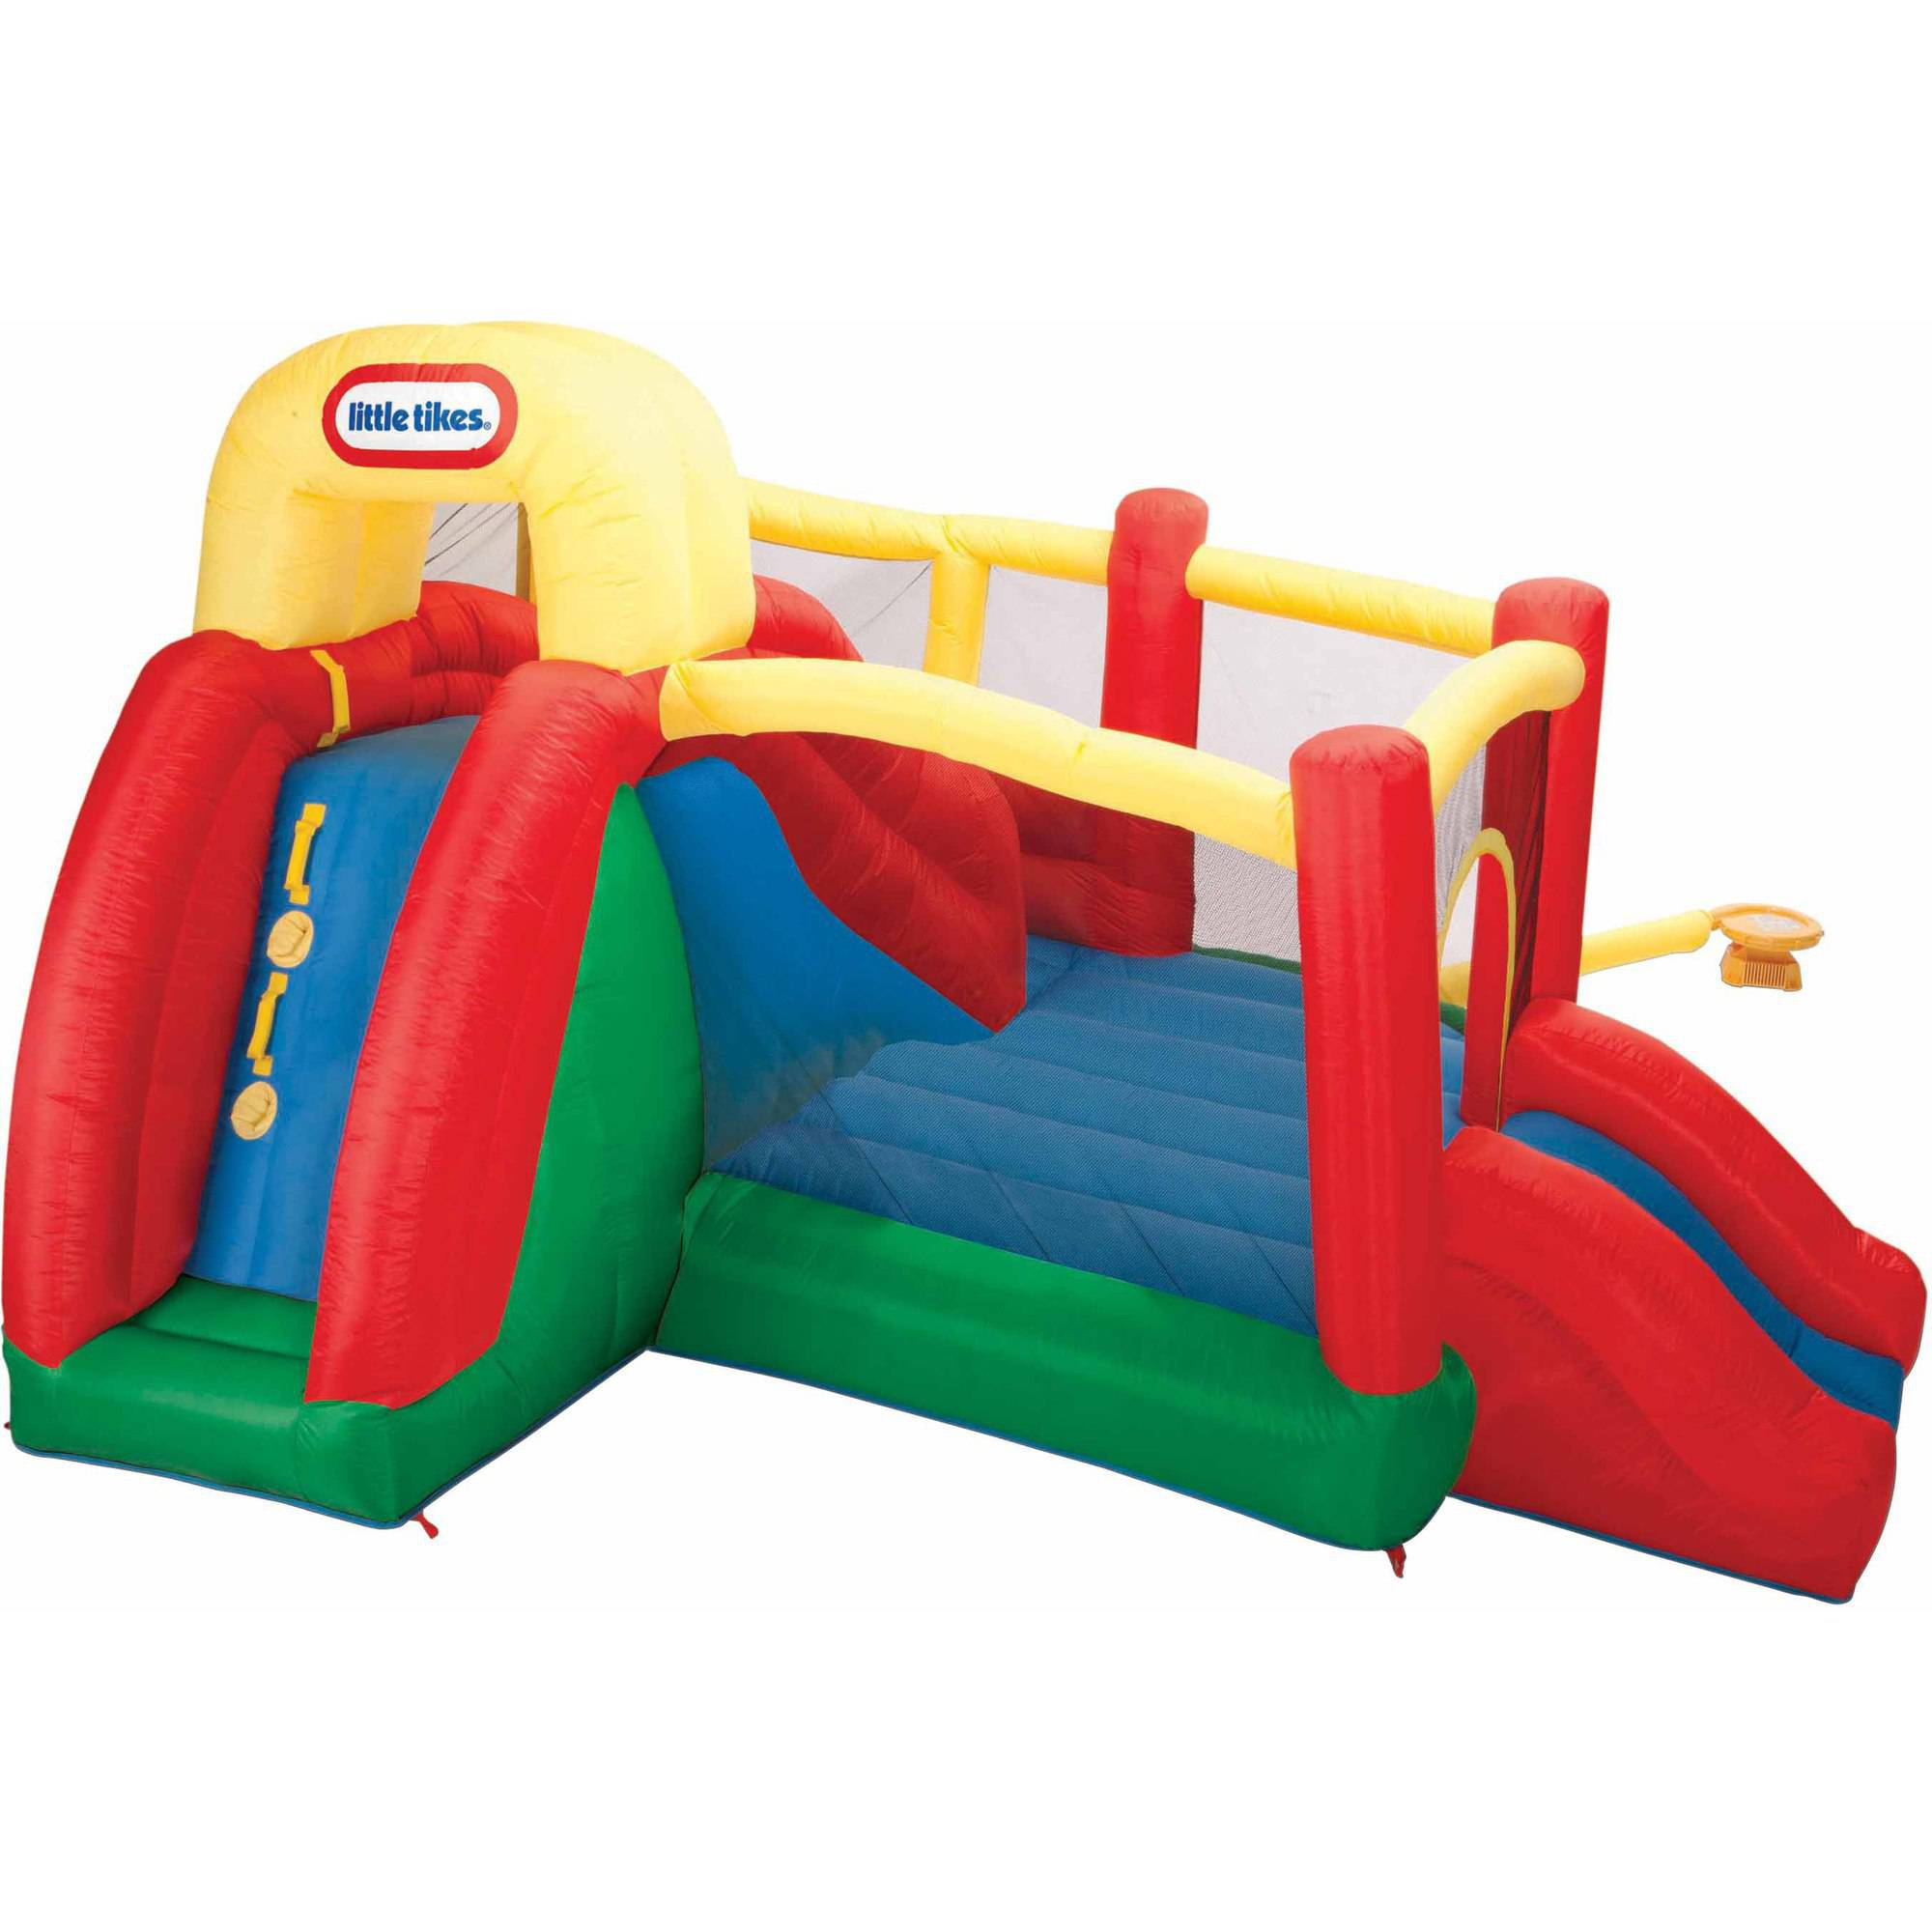 Xtreme Jumpers and Slides Has Huge Selection of Clean, Bounce House Rental & Water Slide Rental in Town. Over 80 Units to Choose From. Voted Best Party Equipment Rental Service in Central Florida. Call to Reserve Today! ()